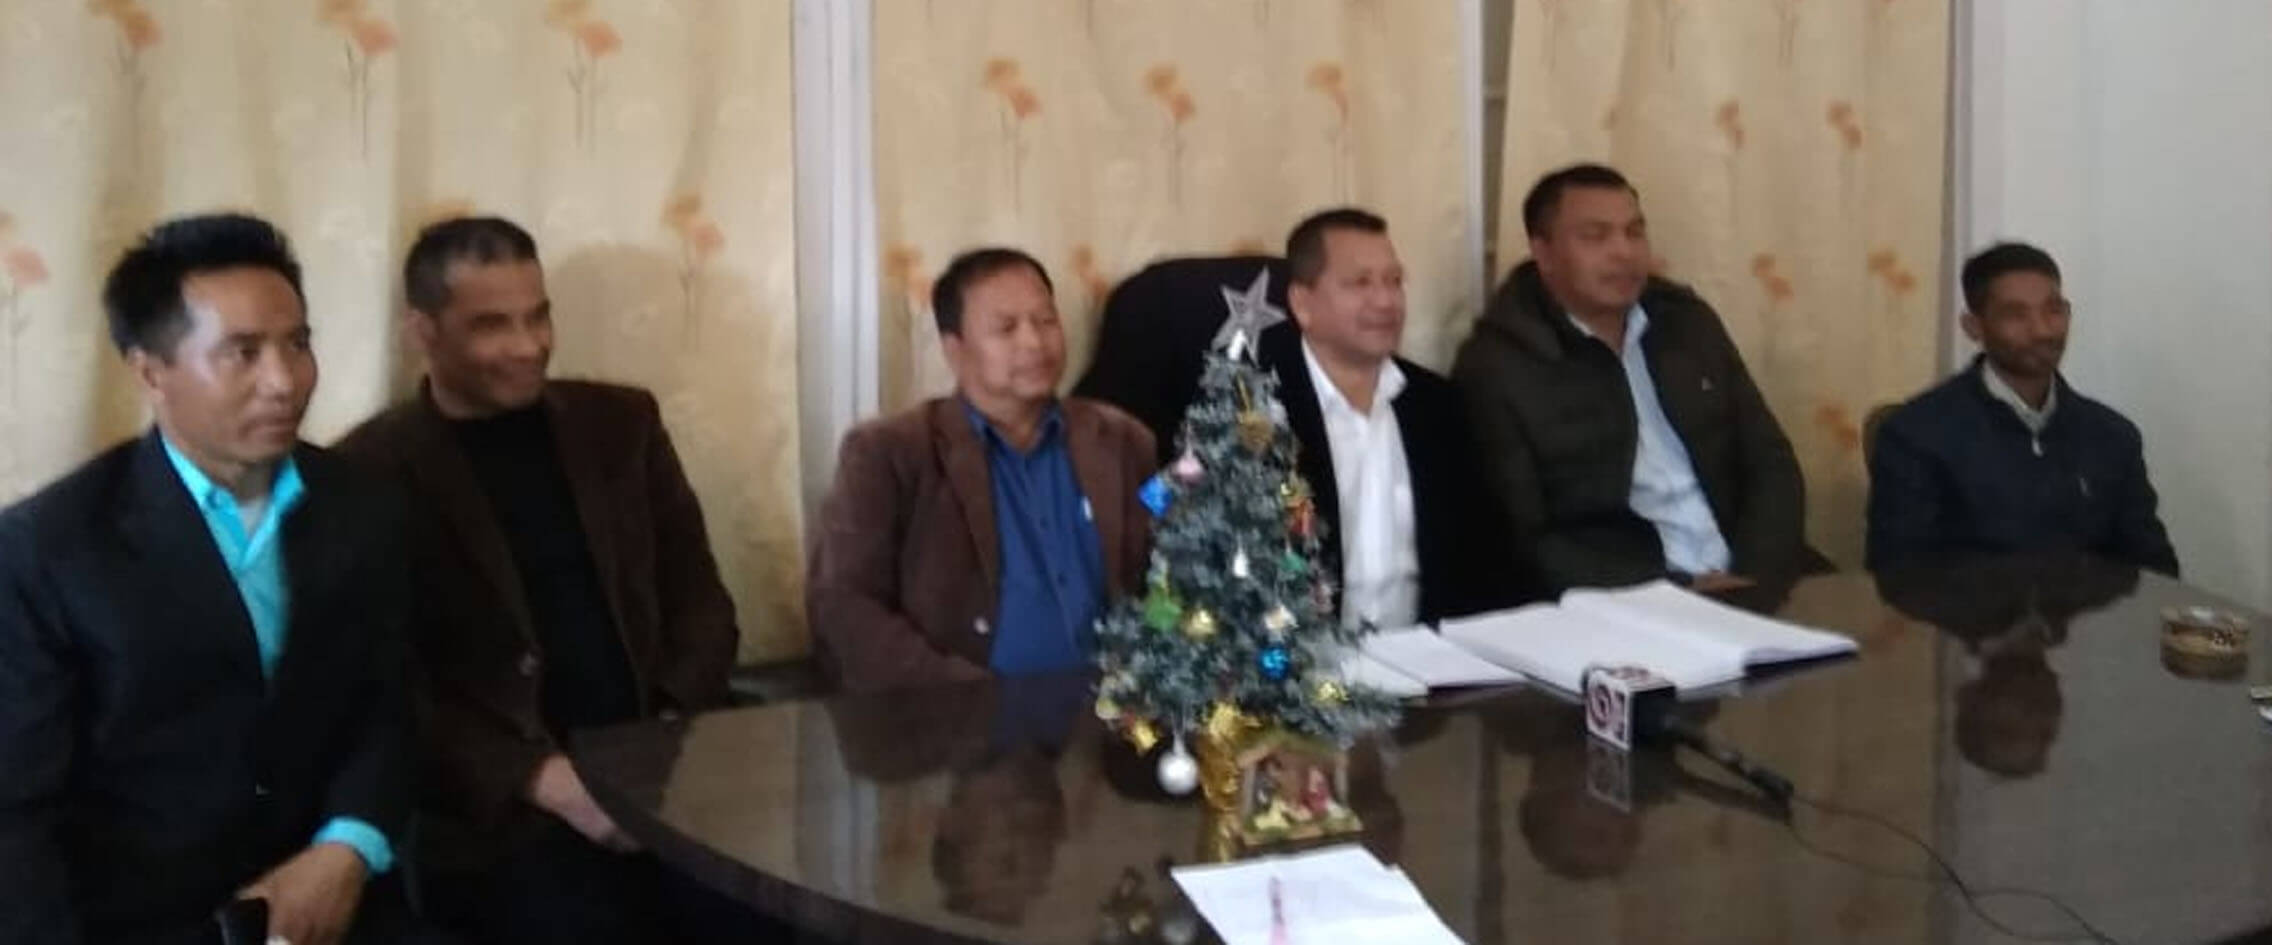 United Democratic Party Announces its Third List of Candidates in Shillong